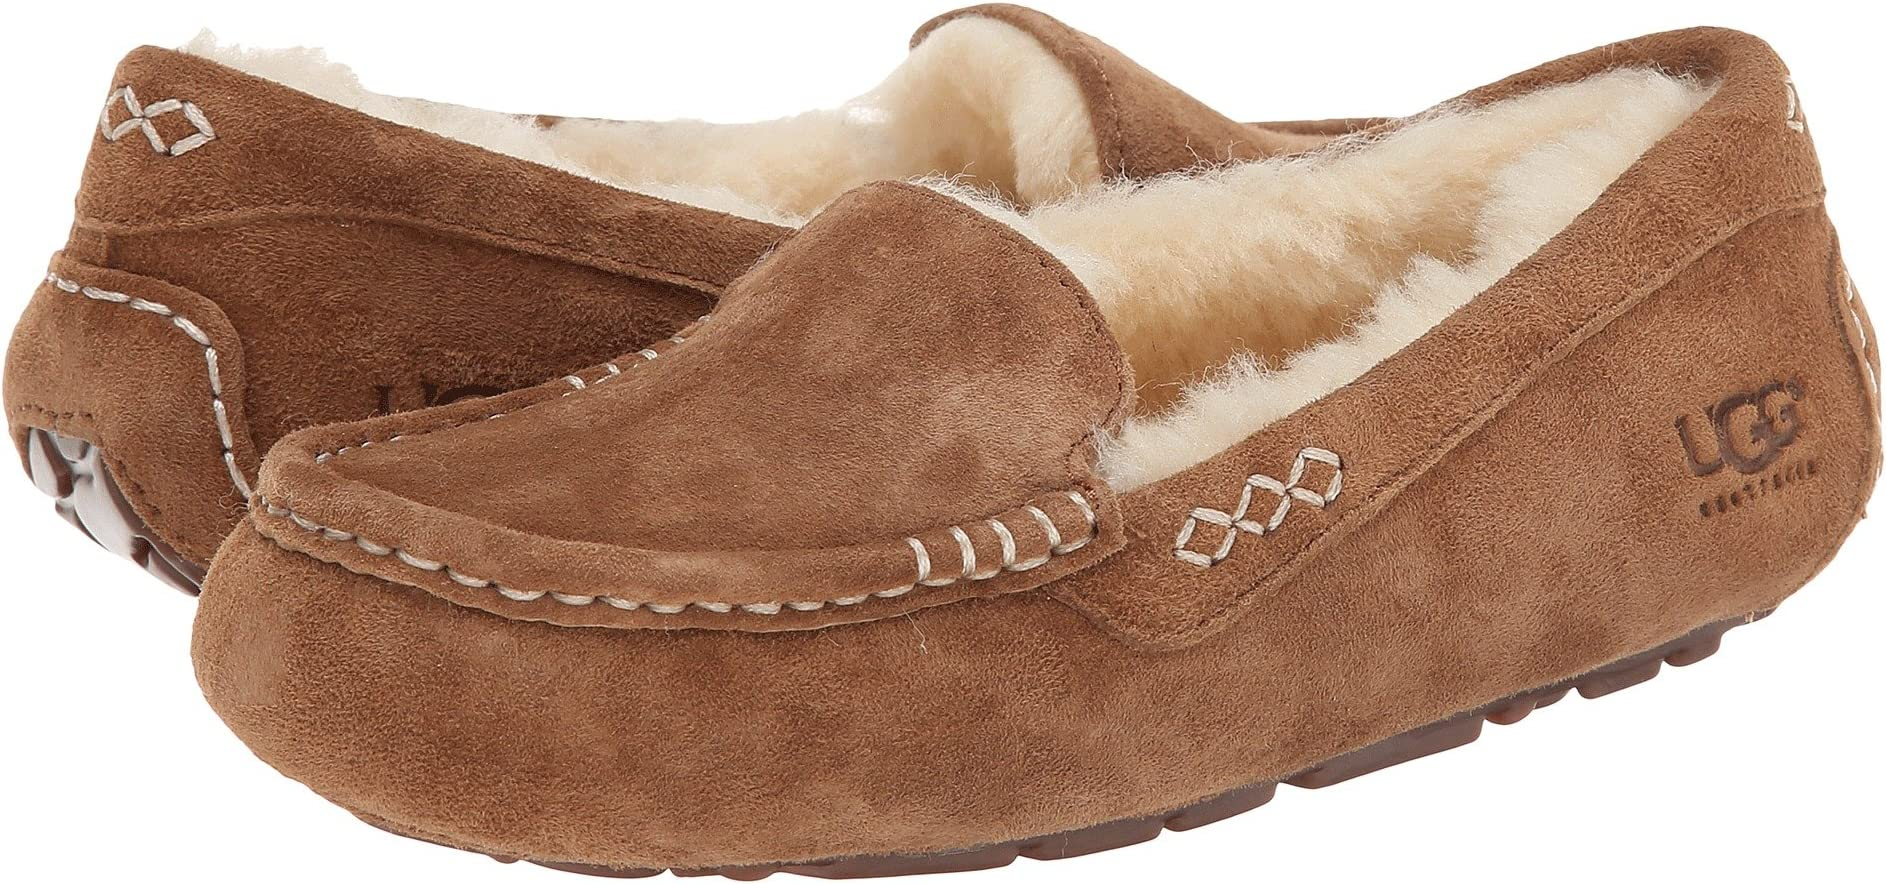 ugg slippers zappos